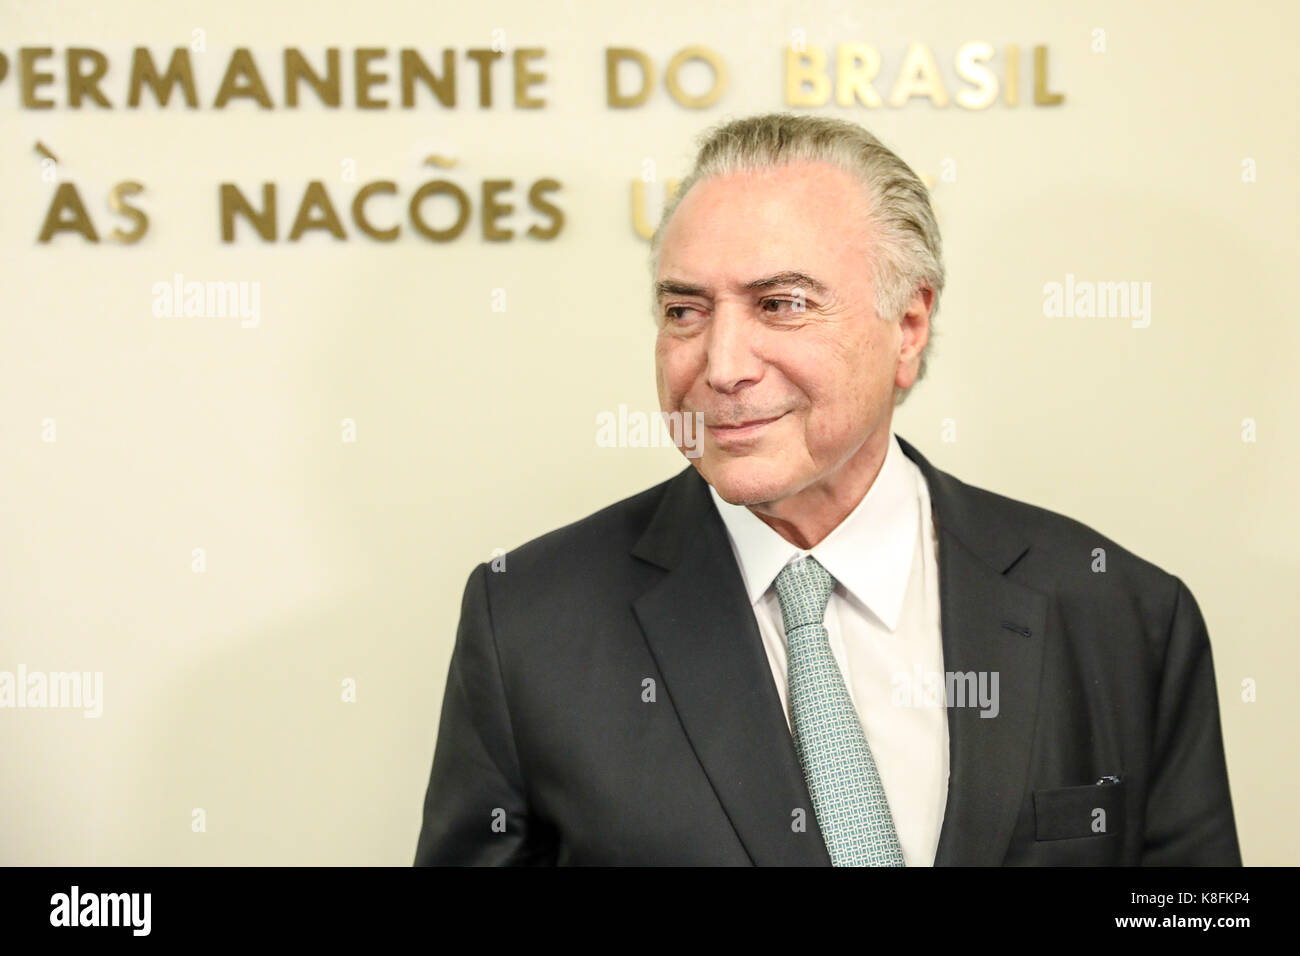 New York, USA. 19th Sep, 2017. Michel Temer, president of the Republic of Brazil, attends a press conference at Stock Photo